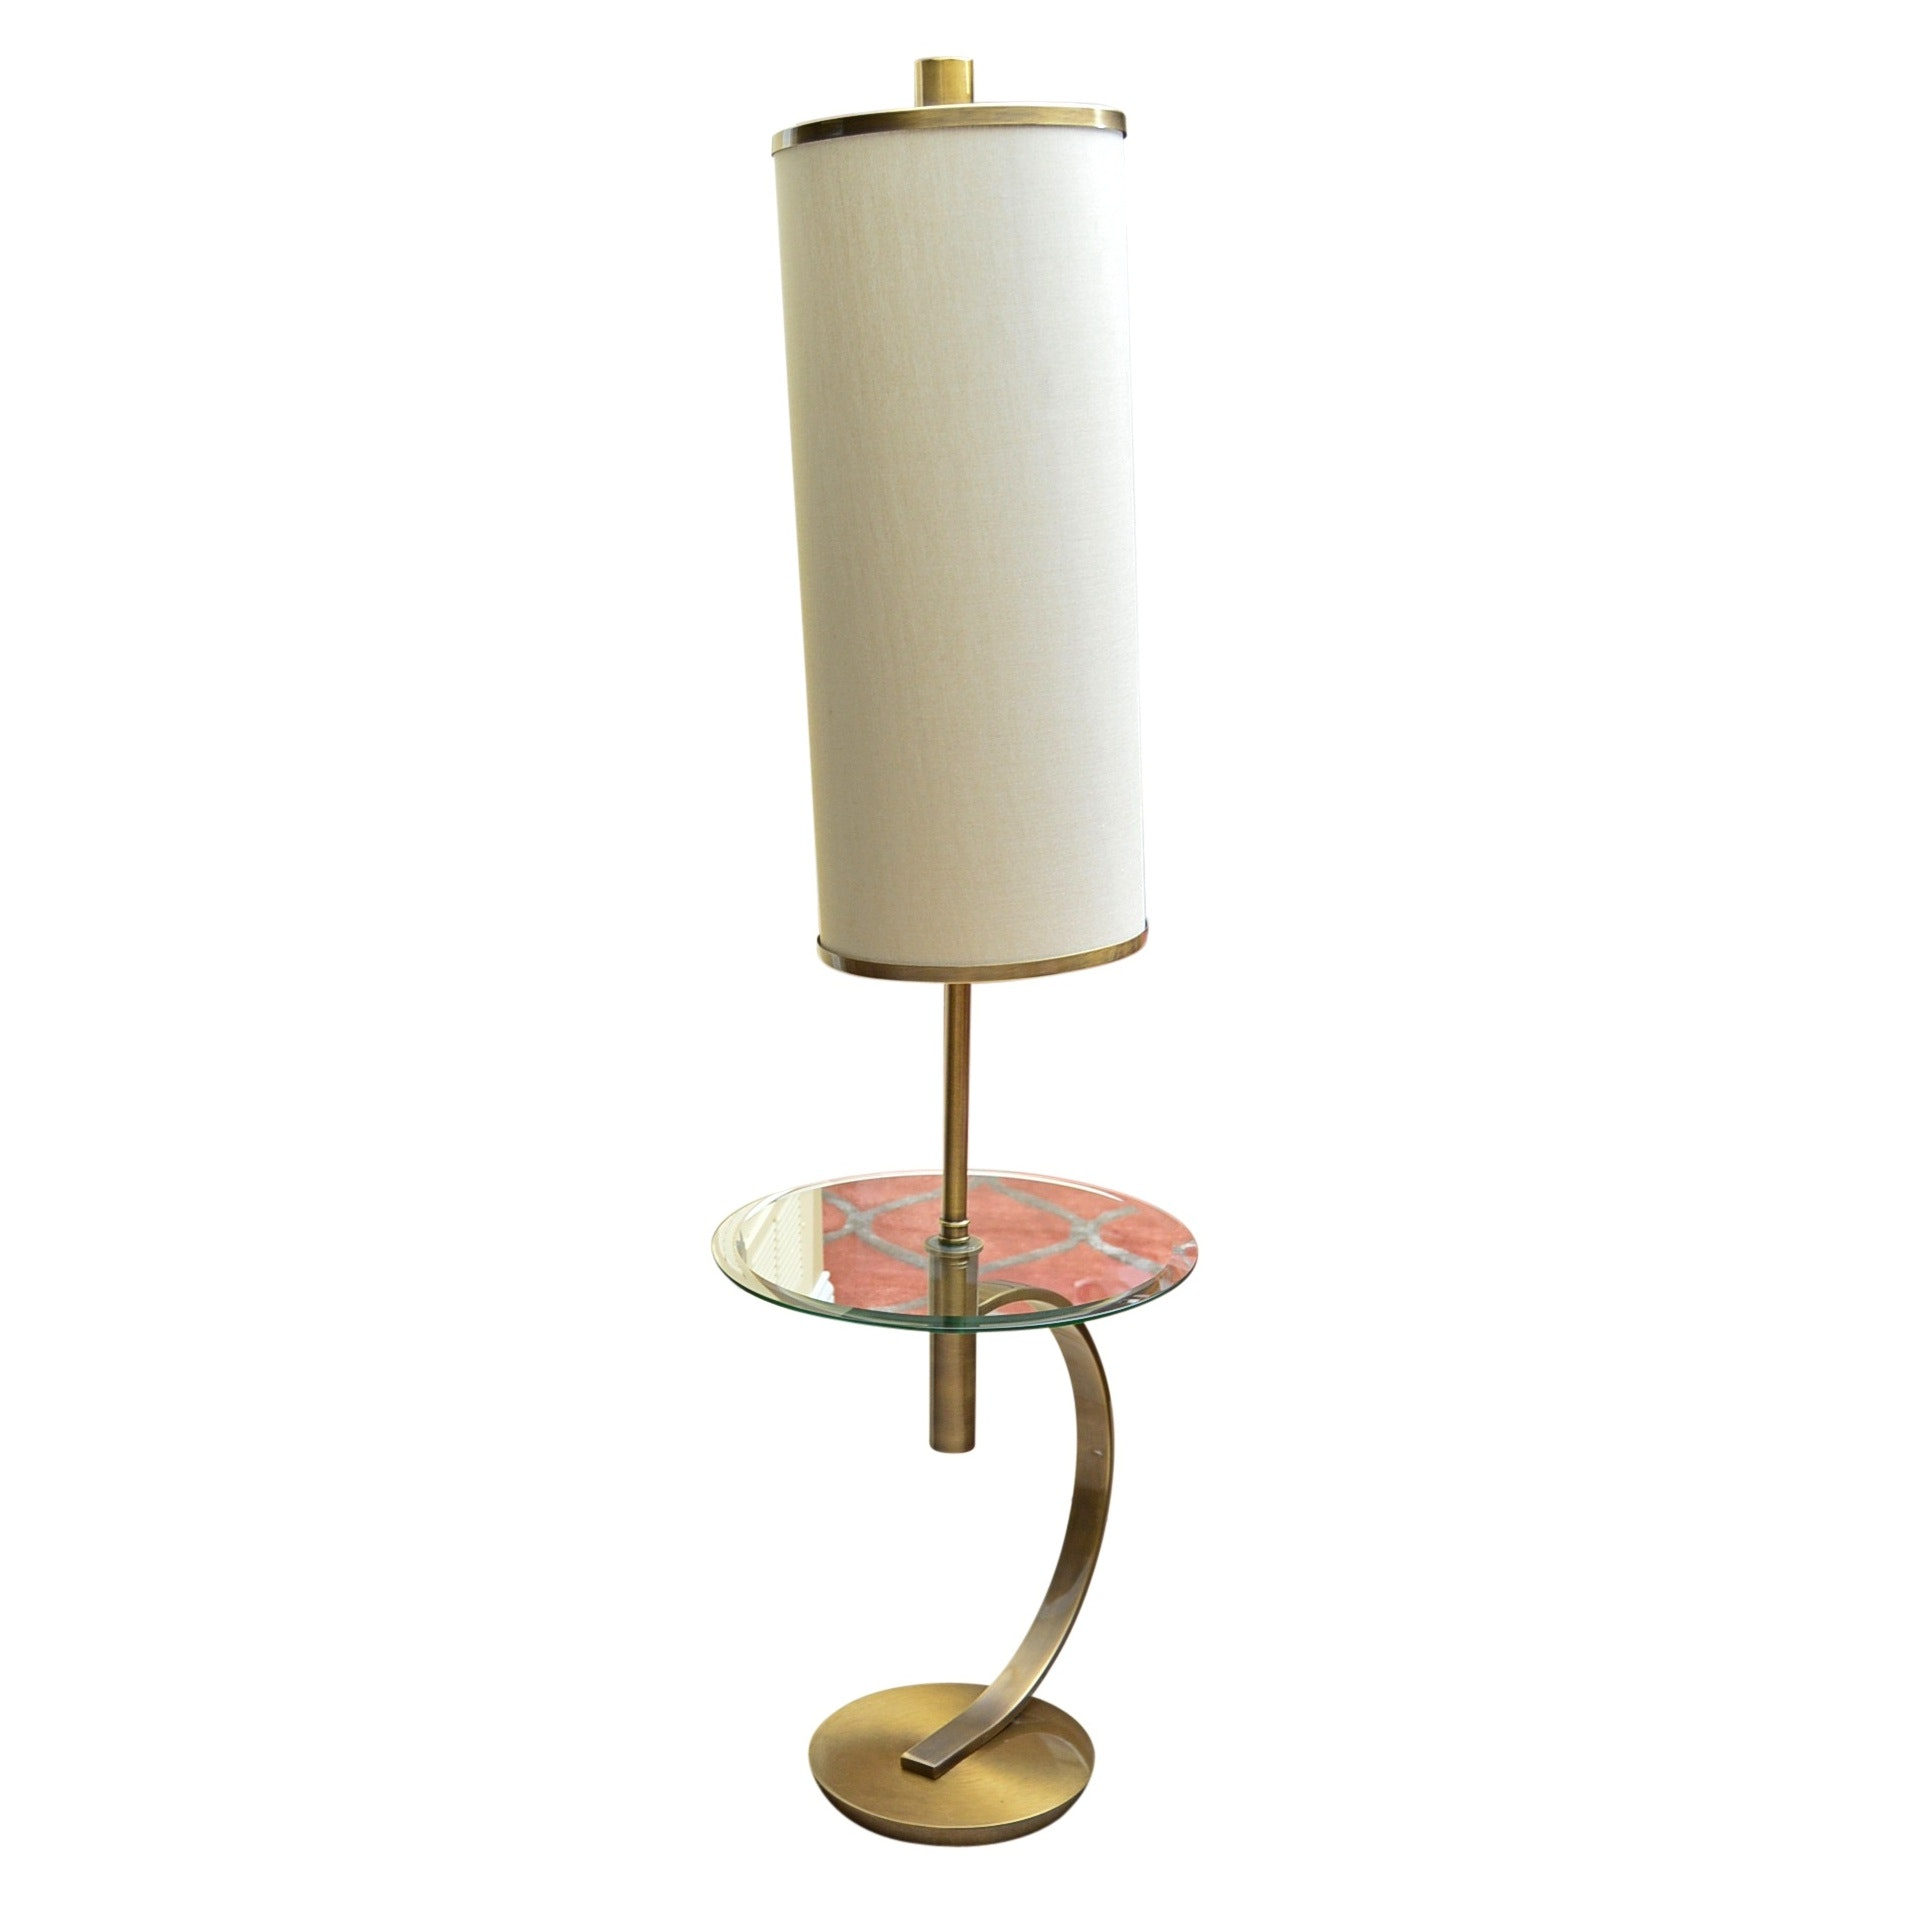 Mid Century Modern Style Floor Lamp with Table